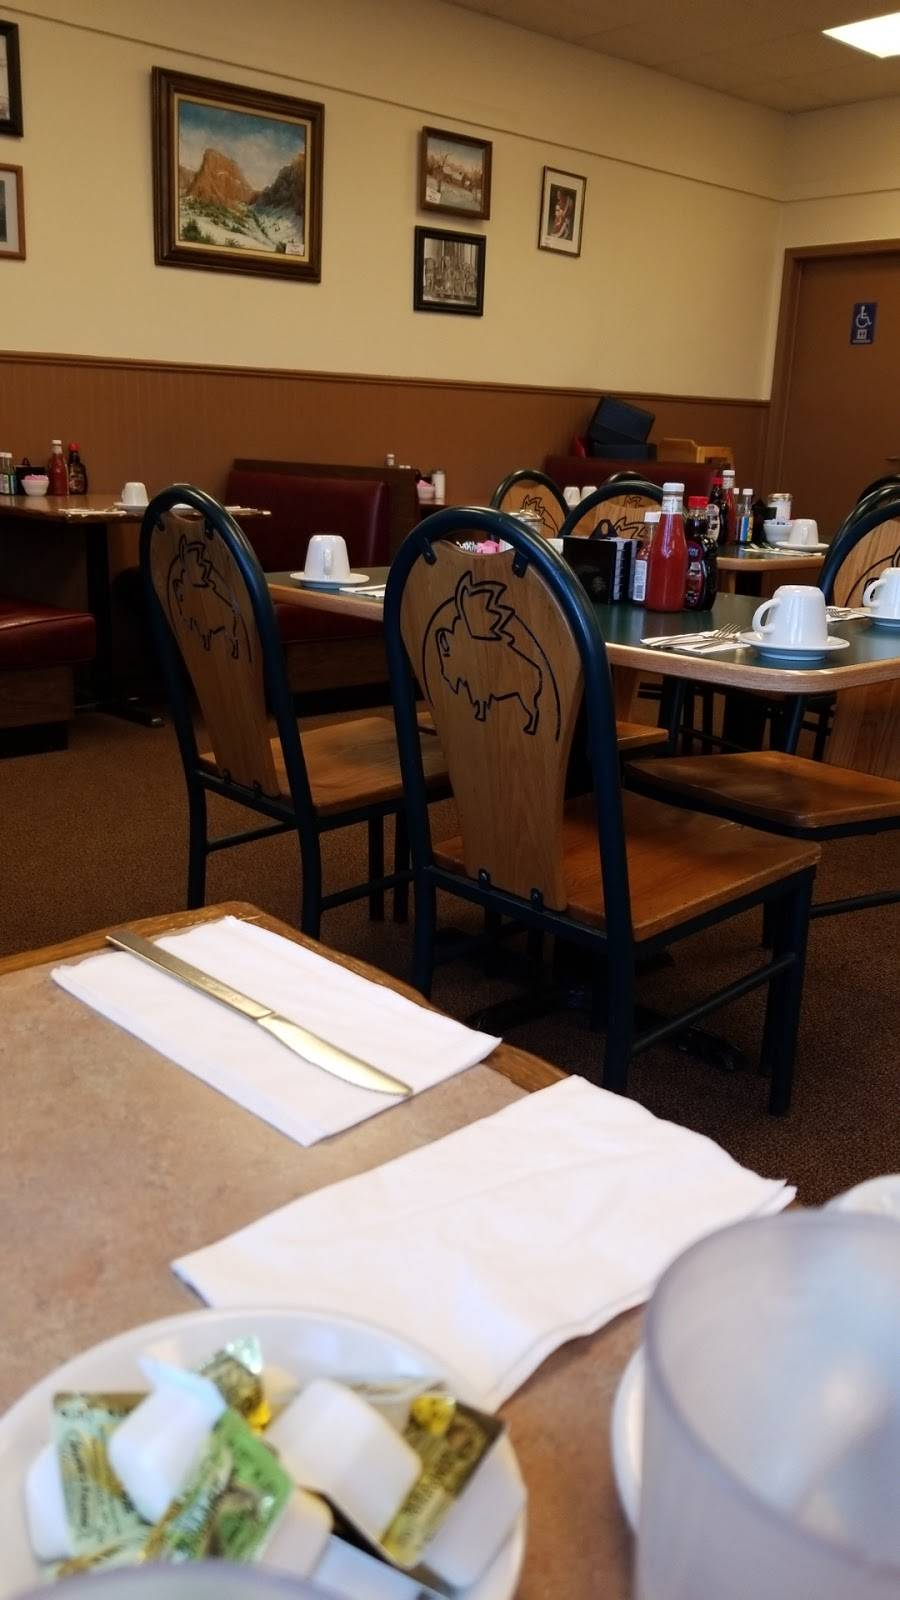 Michaels Pancake House | bakery | 6753 W 111th St, Worth, IL 60482, USA | 7089236608 OR +1 708-923-6608